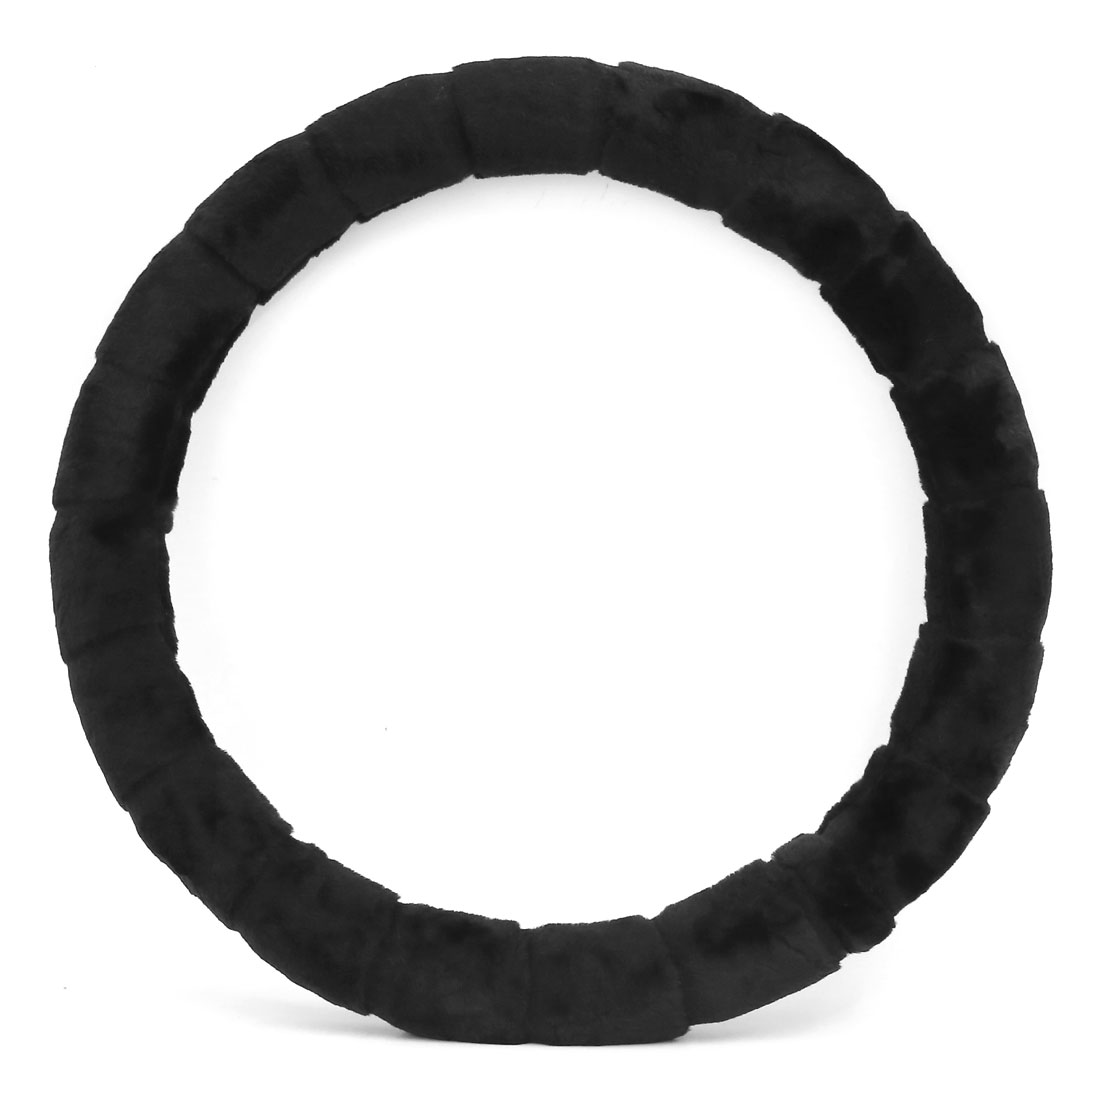 Black Winter Warm Comfort Grips Soft Plush Steering Wheel Cover Car Accessory